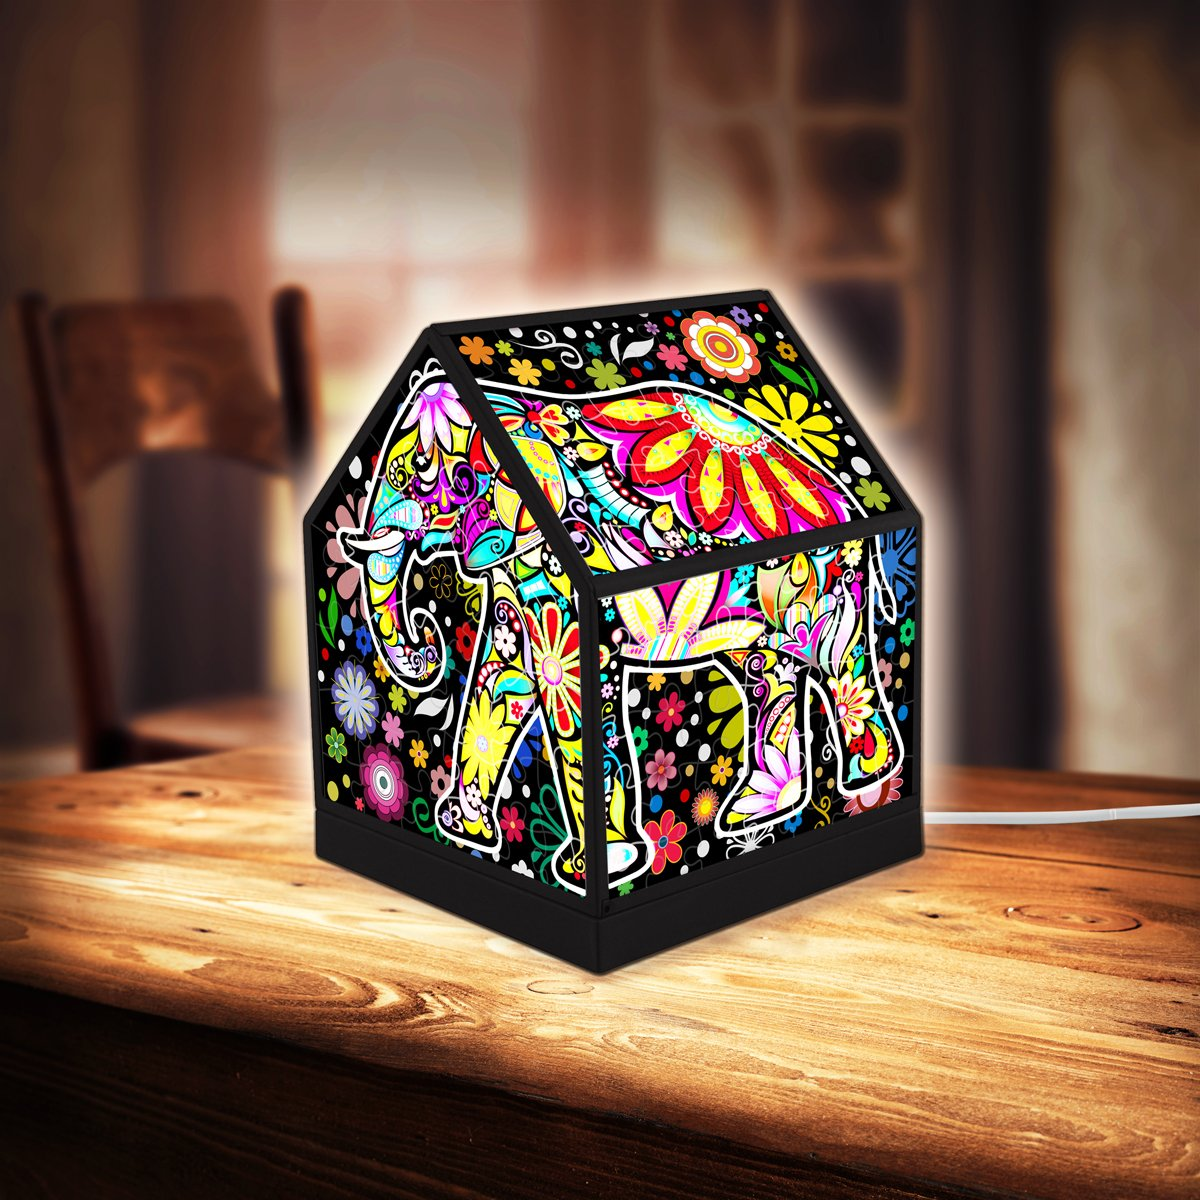 pintoo-3d-puzzle-house-lantern-cheerful-elephants-208-teile-puzzle-pintoo-r1007